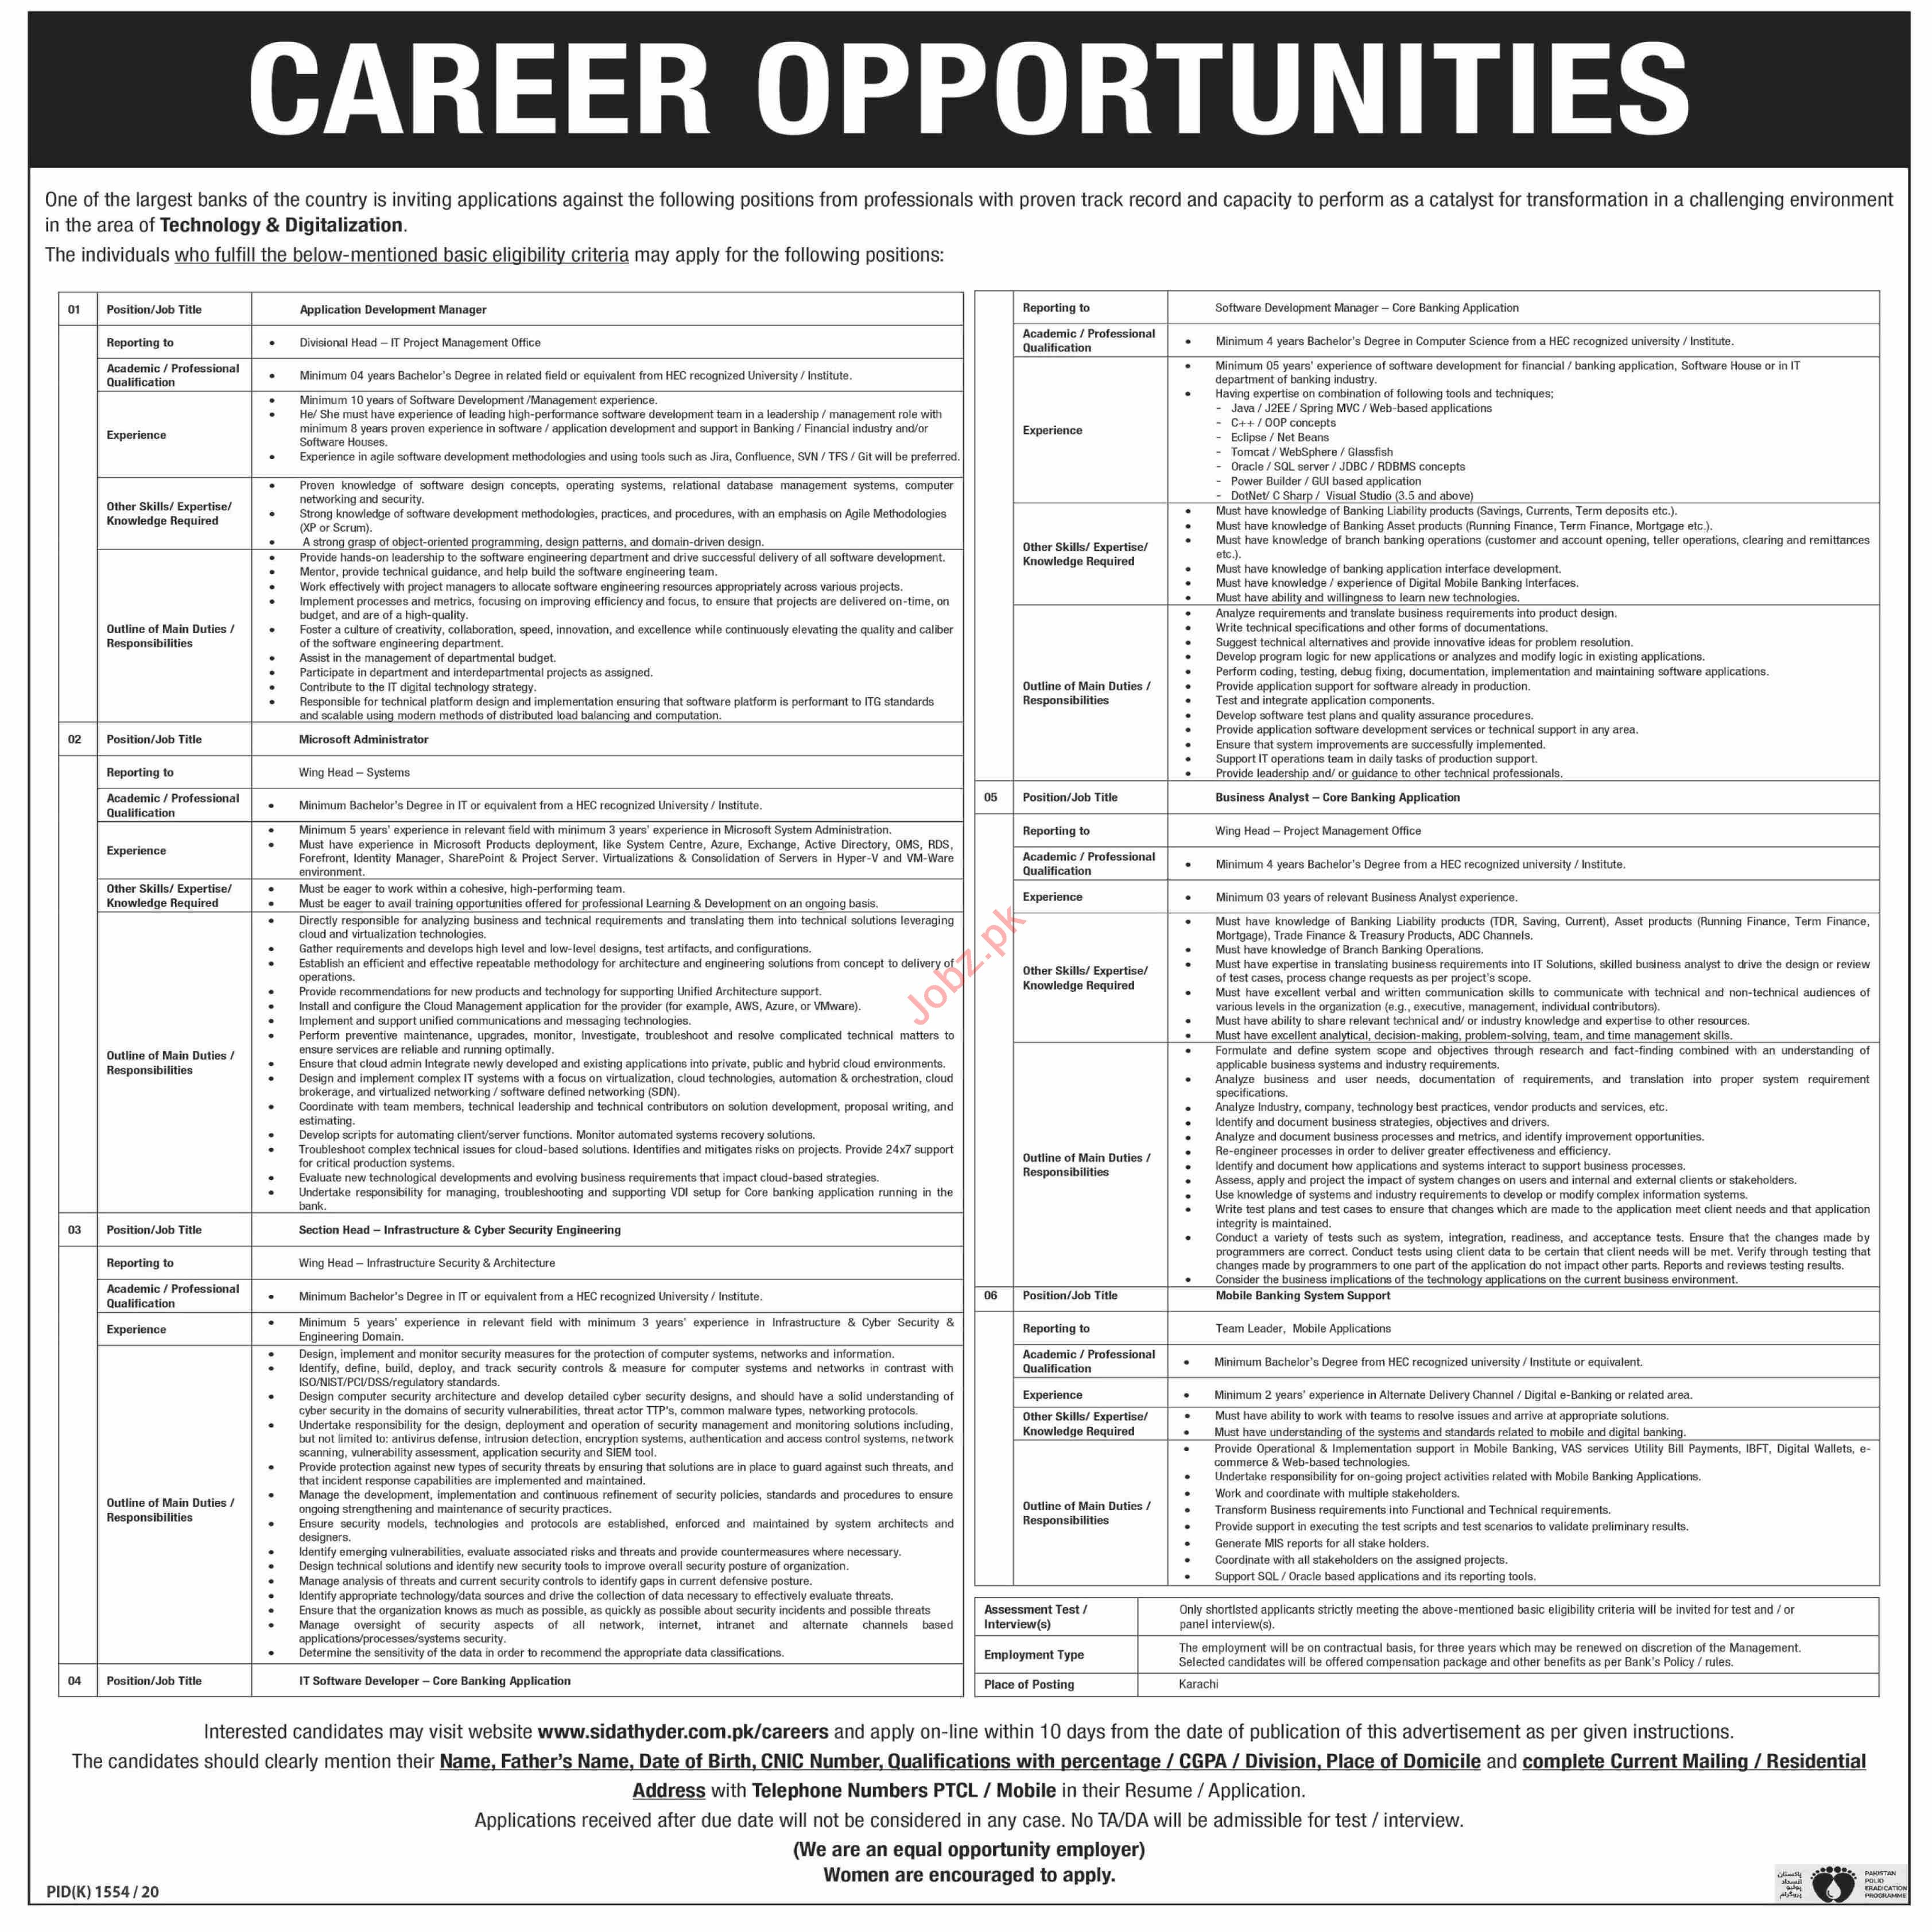 Application Development Manager & MS Administrator Jobs 2020